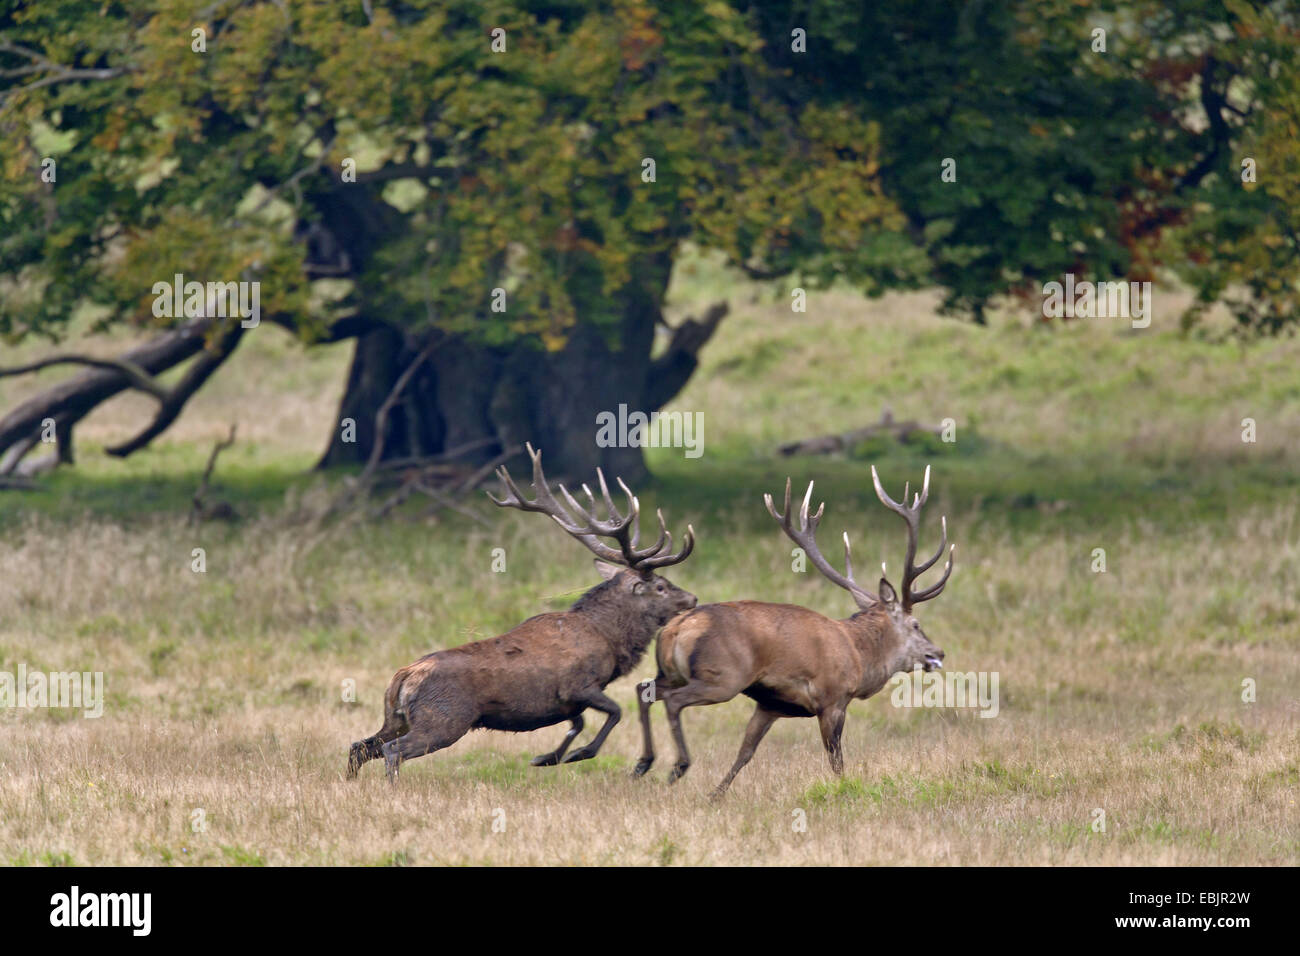 red deer (Cervus elaphus), stag repulse a rival from the rutting ground, Denmark, Seeland - Stock Image